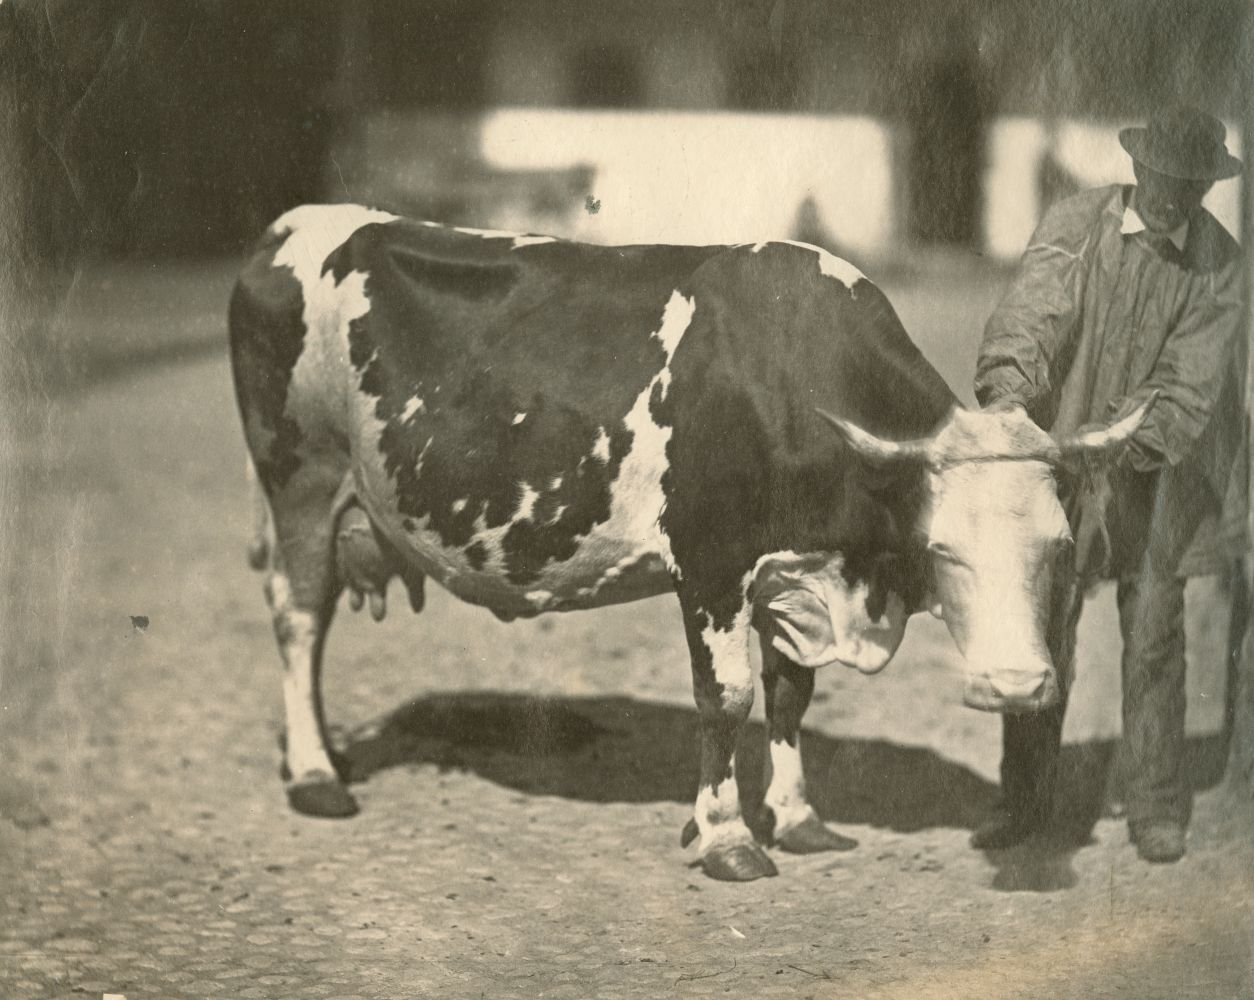 Adolphe BRAUN (French, 1812-1877) Cow and farmer, late 1850s Albumen print from a collodion negative 23.0 x 28.2 cm on 23.9 x 28.2 cm paper